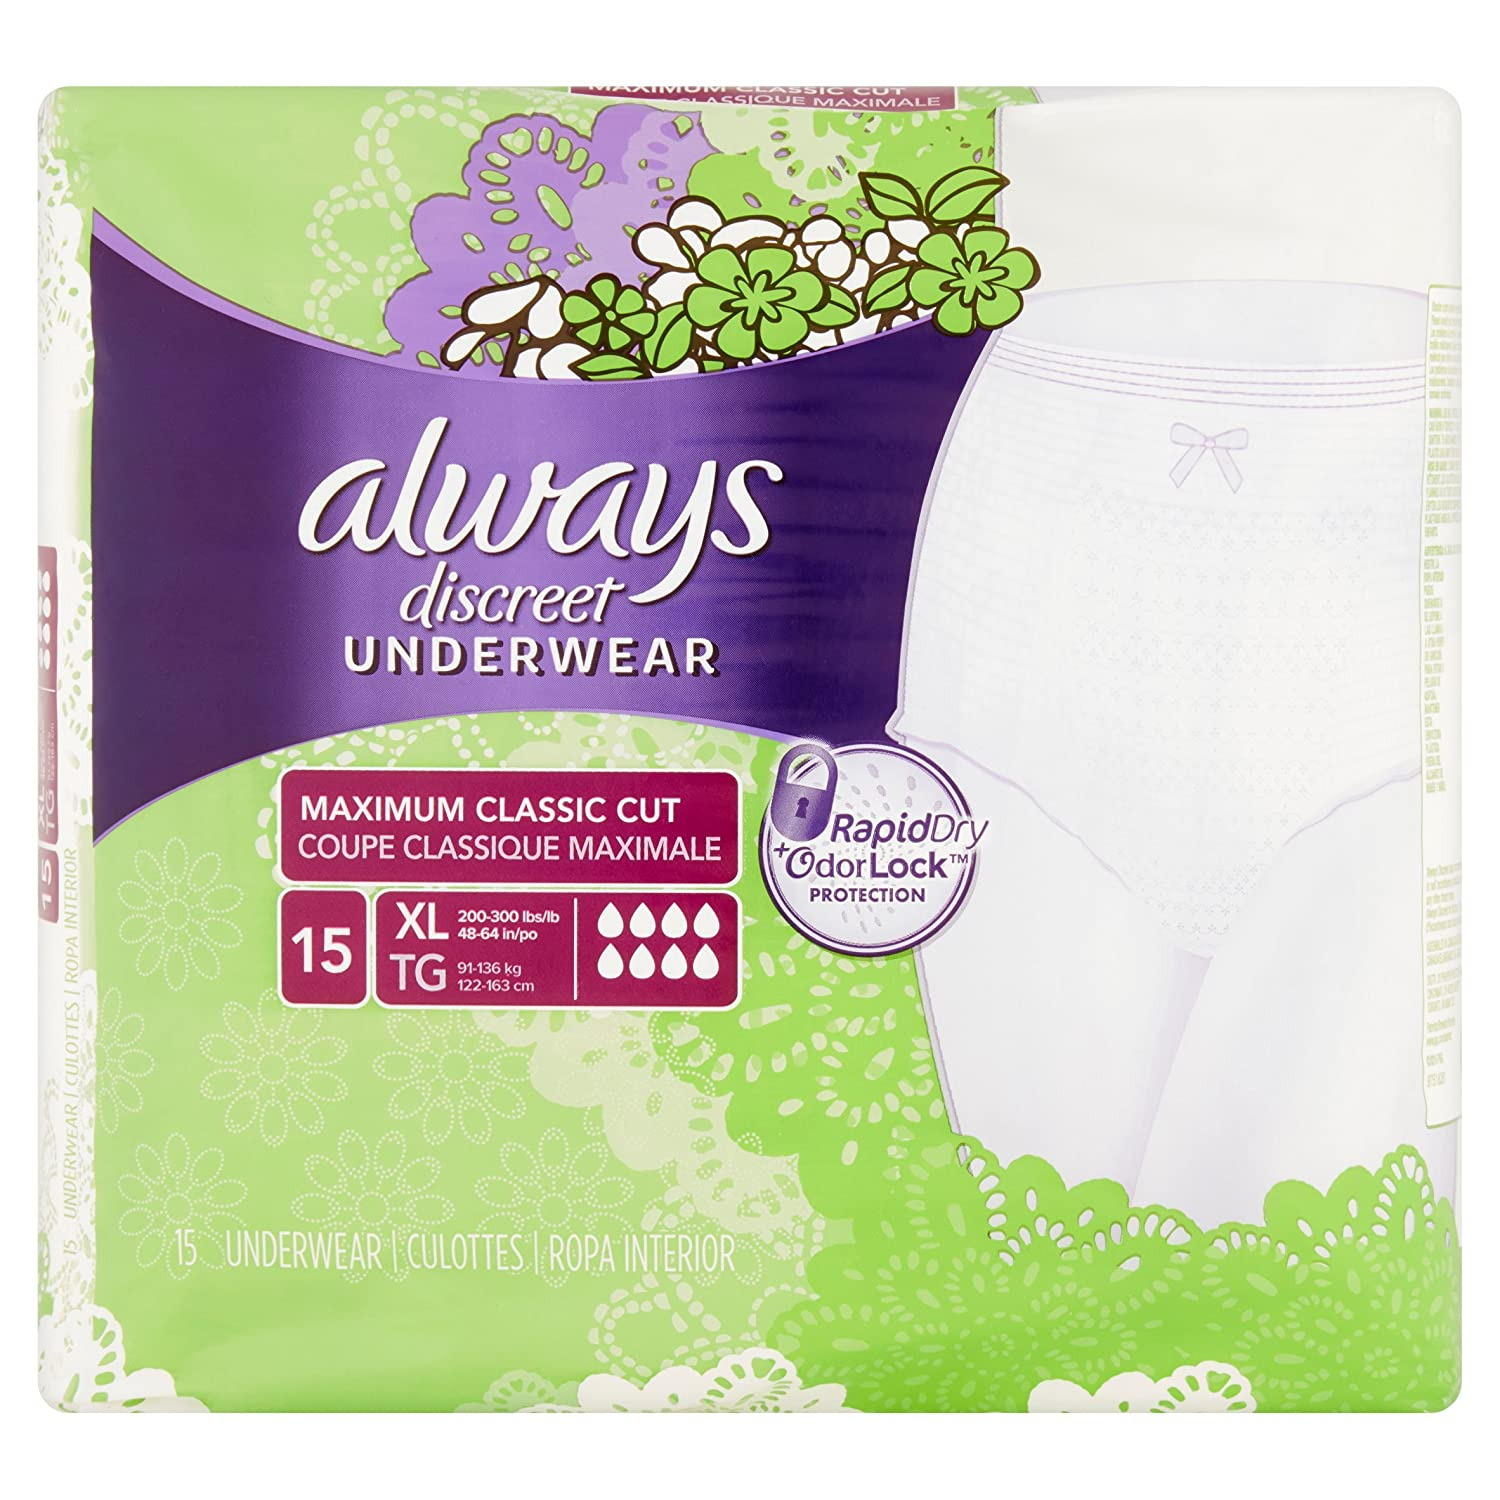 Amazon.com: Always Discreet Incontinence Underwear, XL Maximum, 15 ea - 2pc: Health & Personal Care